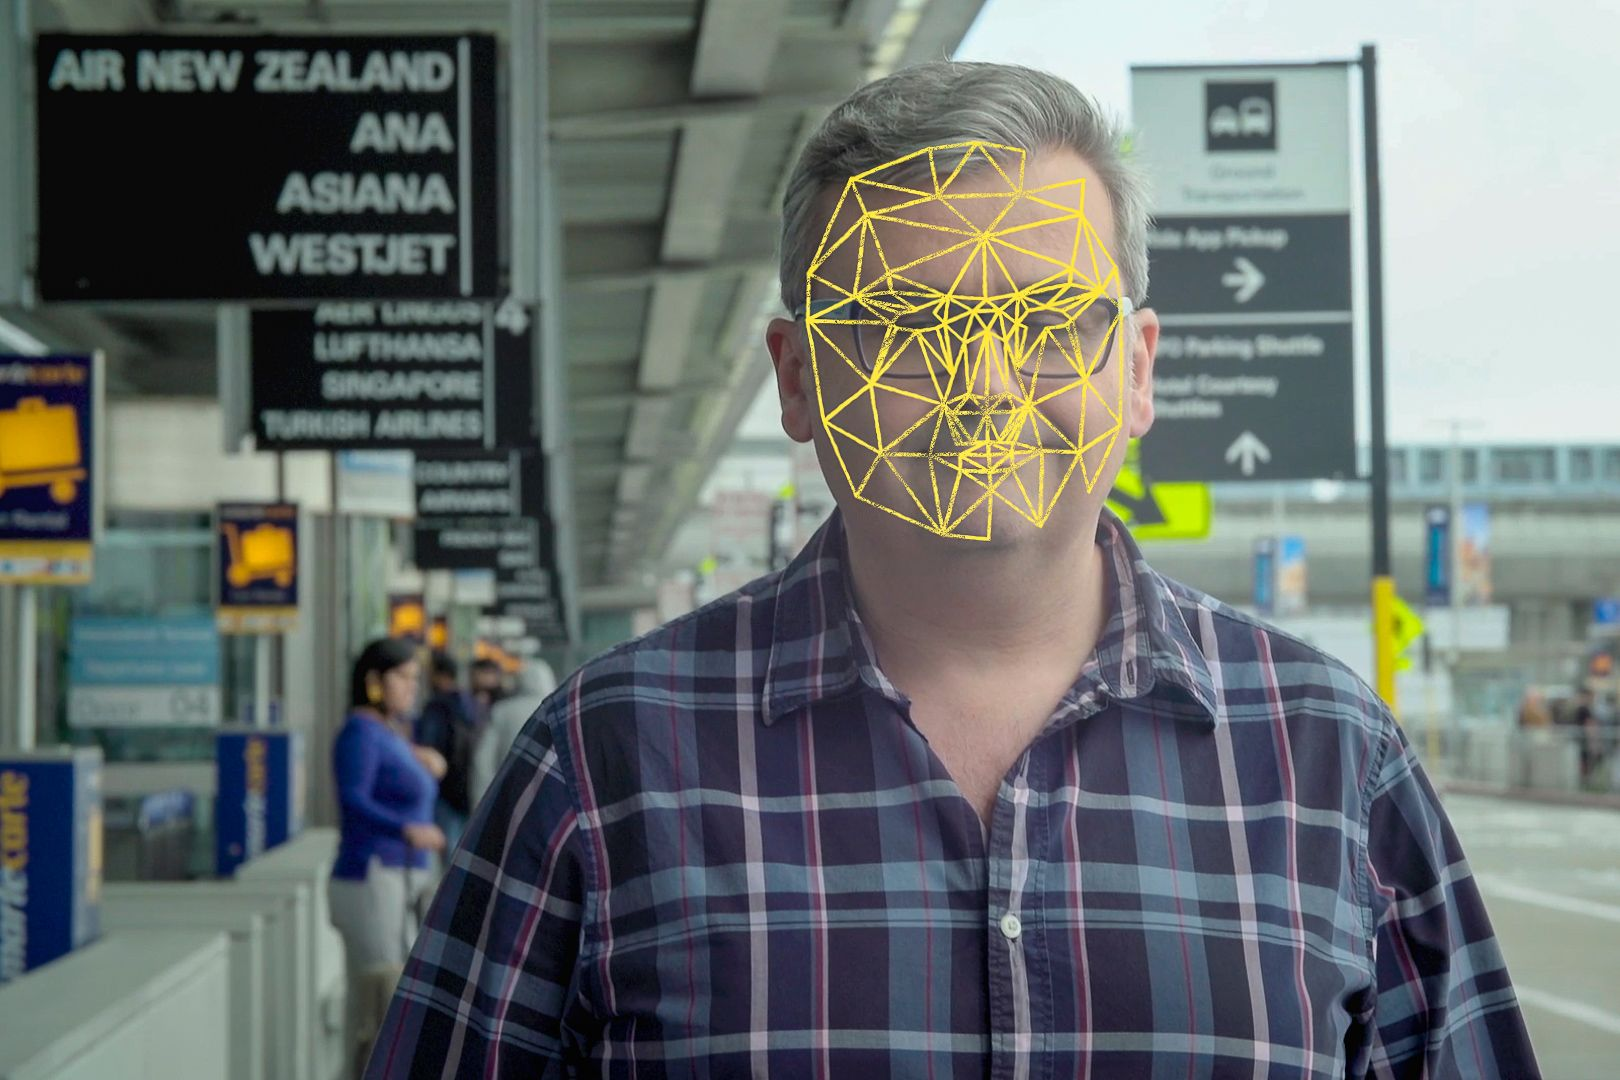 Don T Smile For Surveillance Why Airport Face Scans Are A Privacy